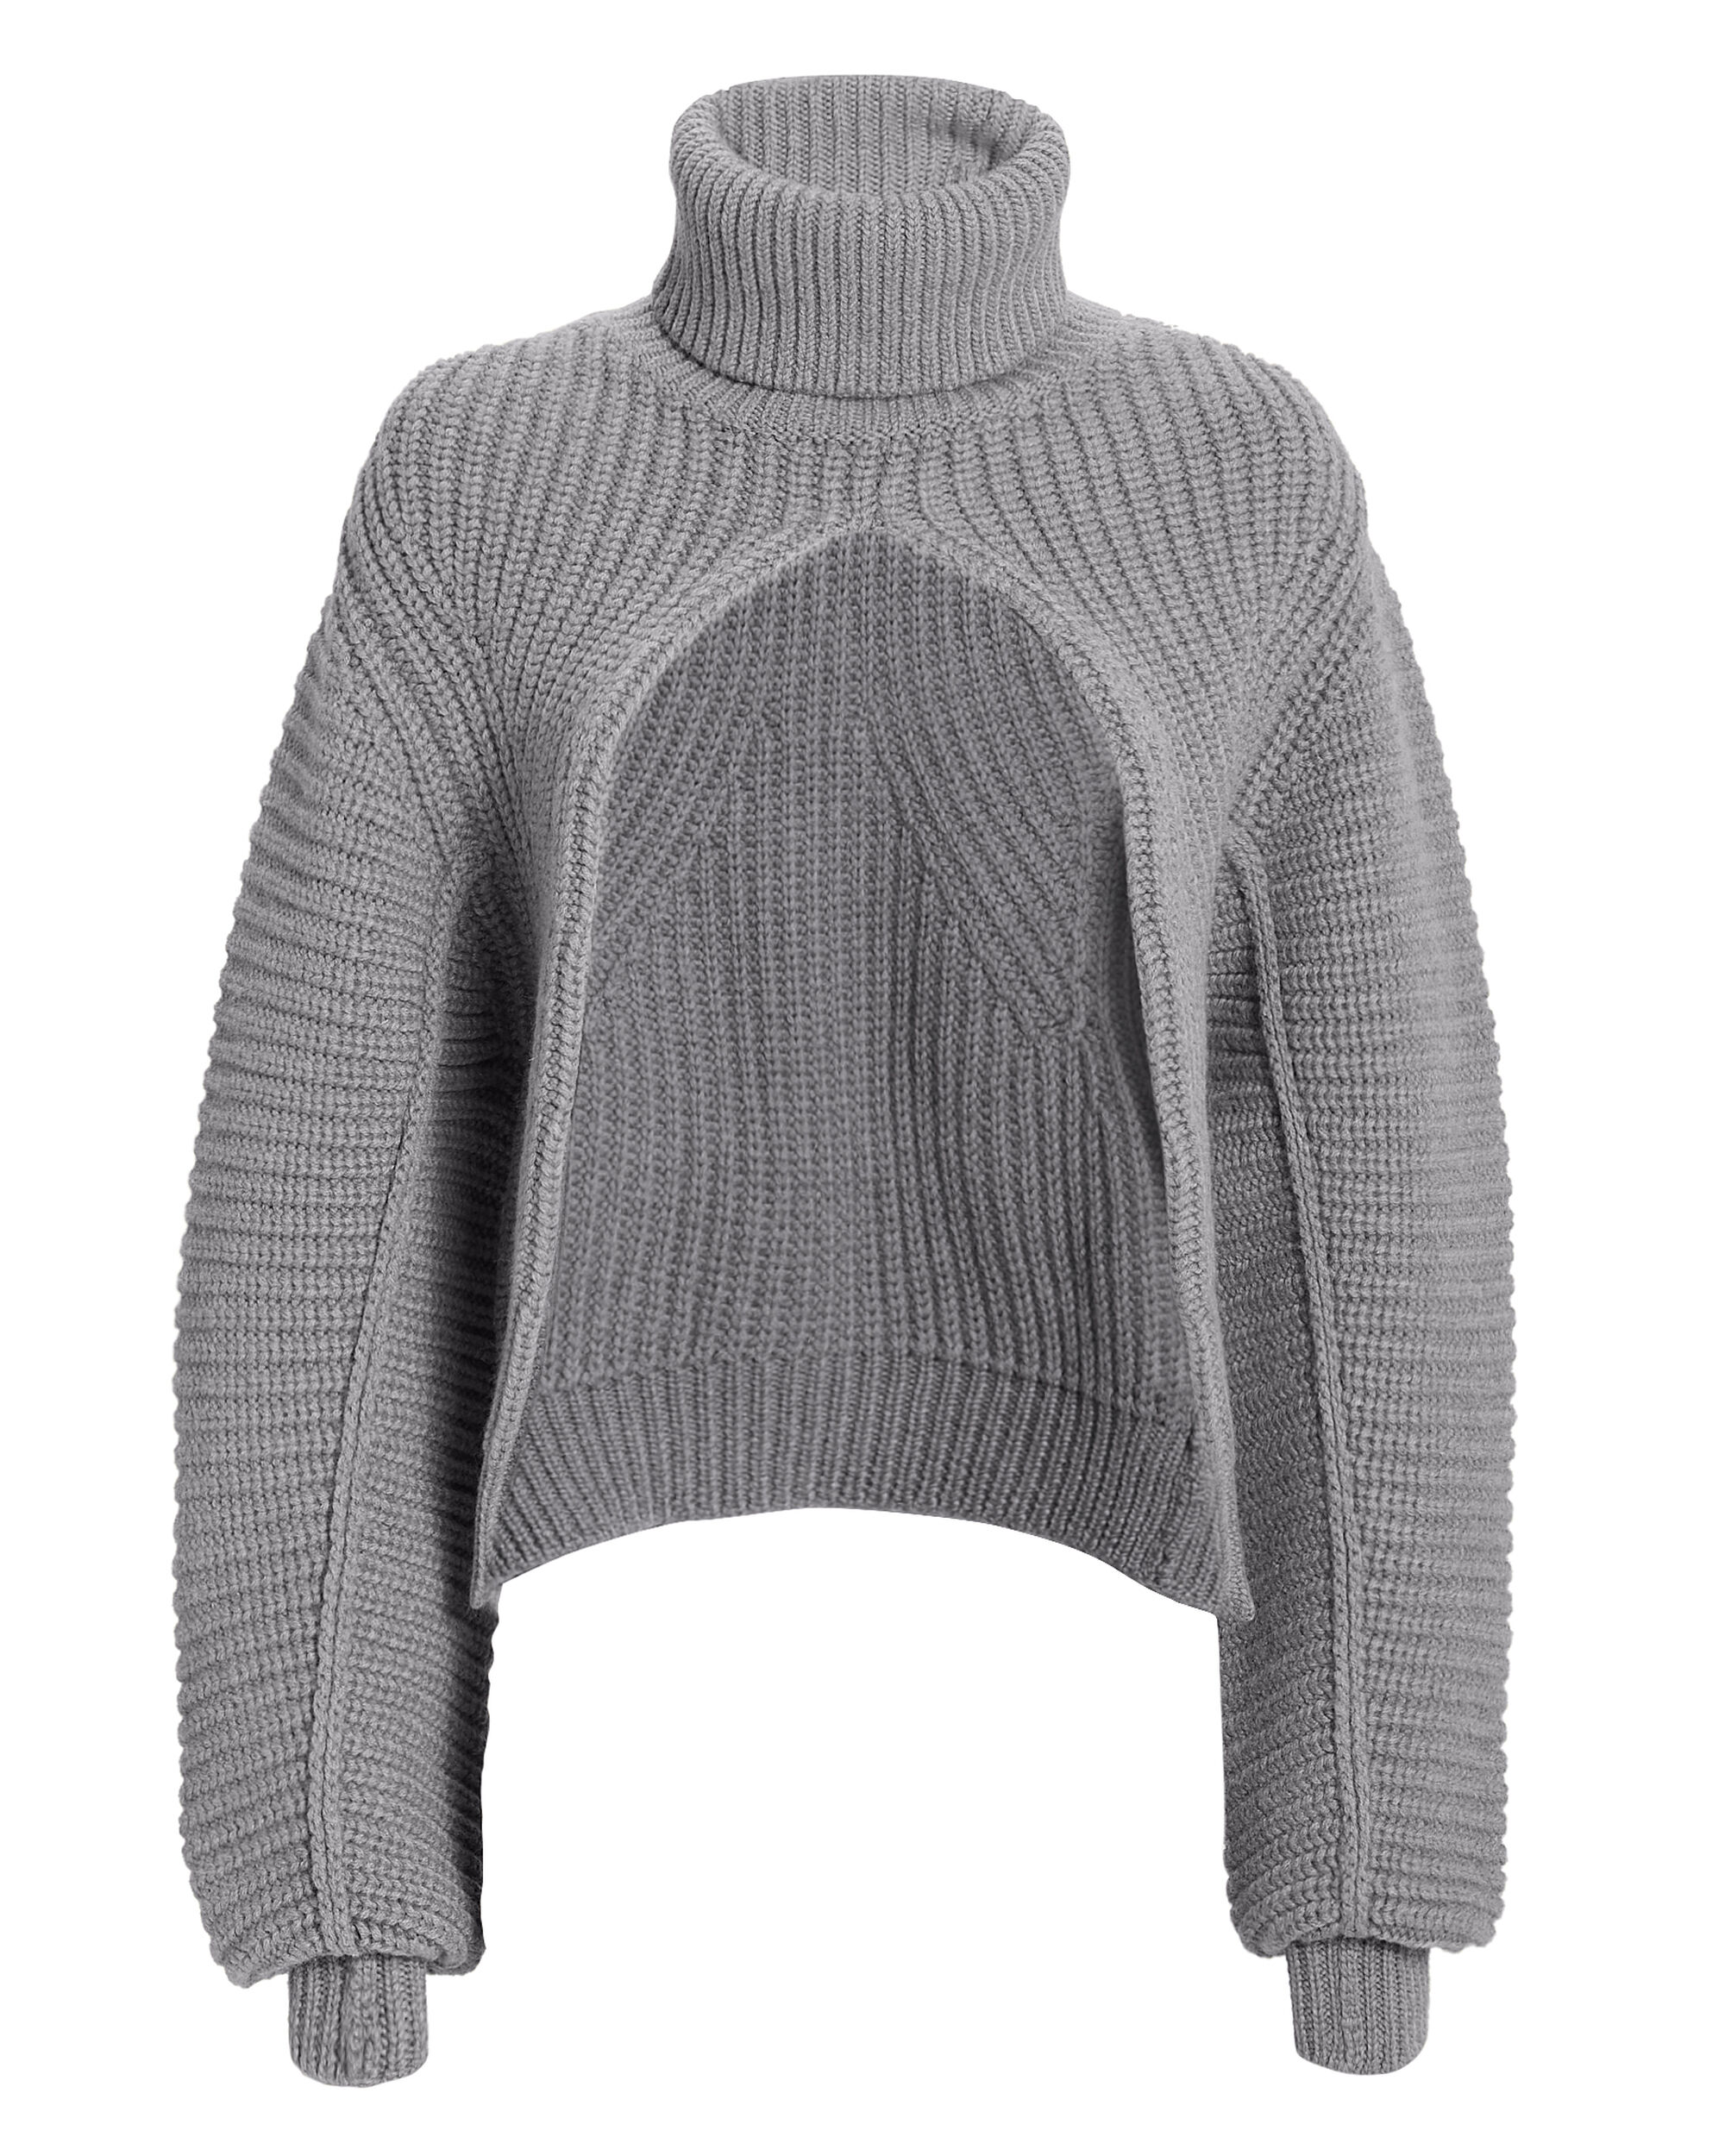 Split Turtleneck Sweater, GREY, hi-res